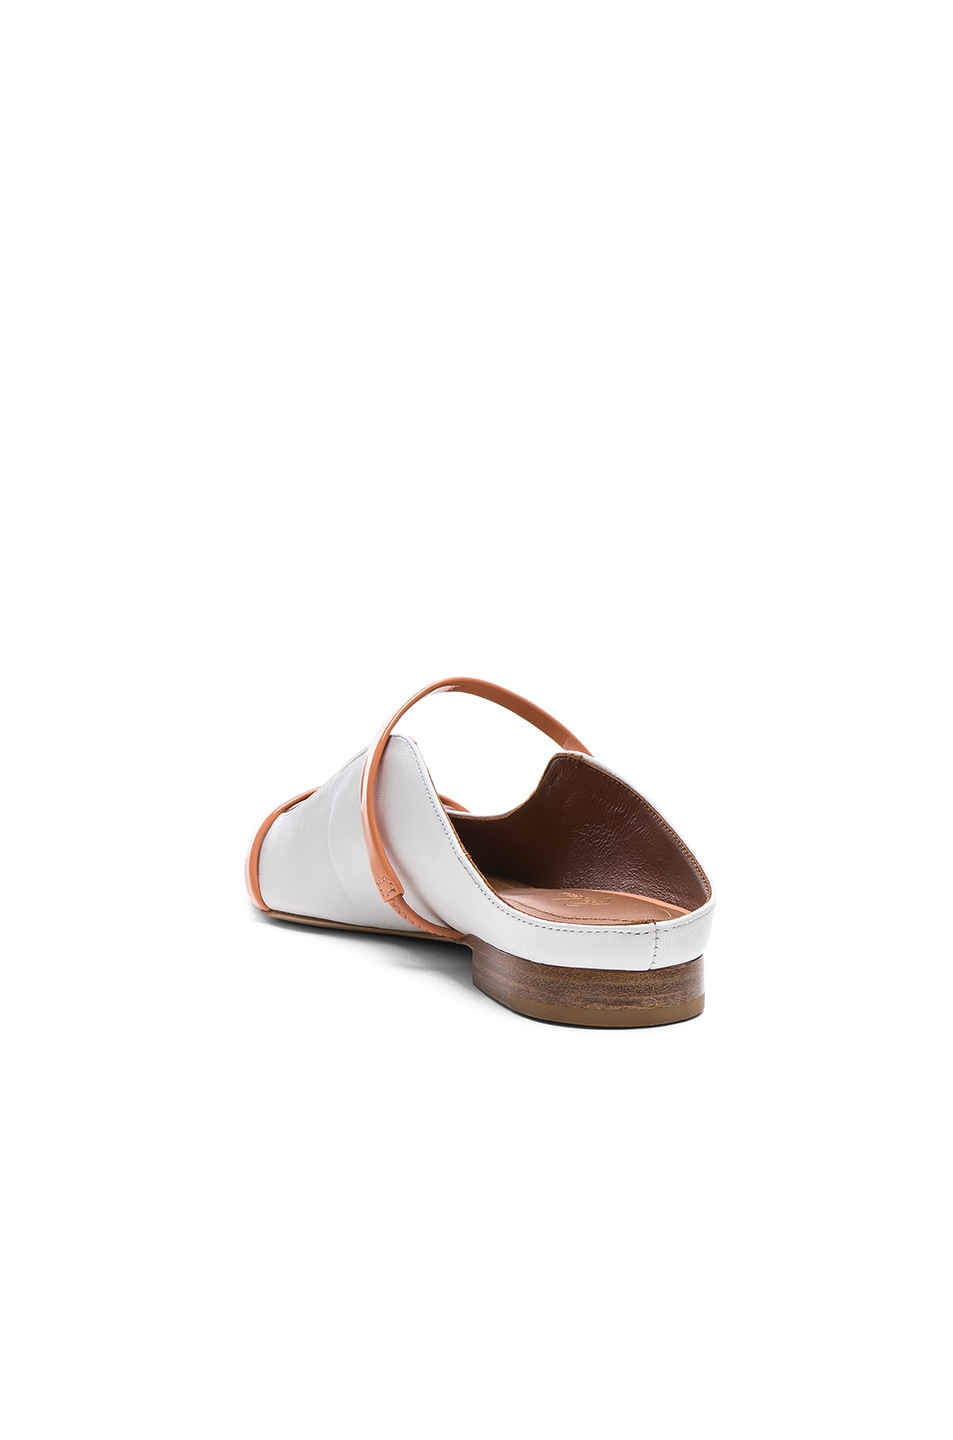 Image 3 of Malone Souliers Maureen Flat in White & Peach